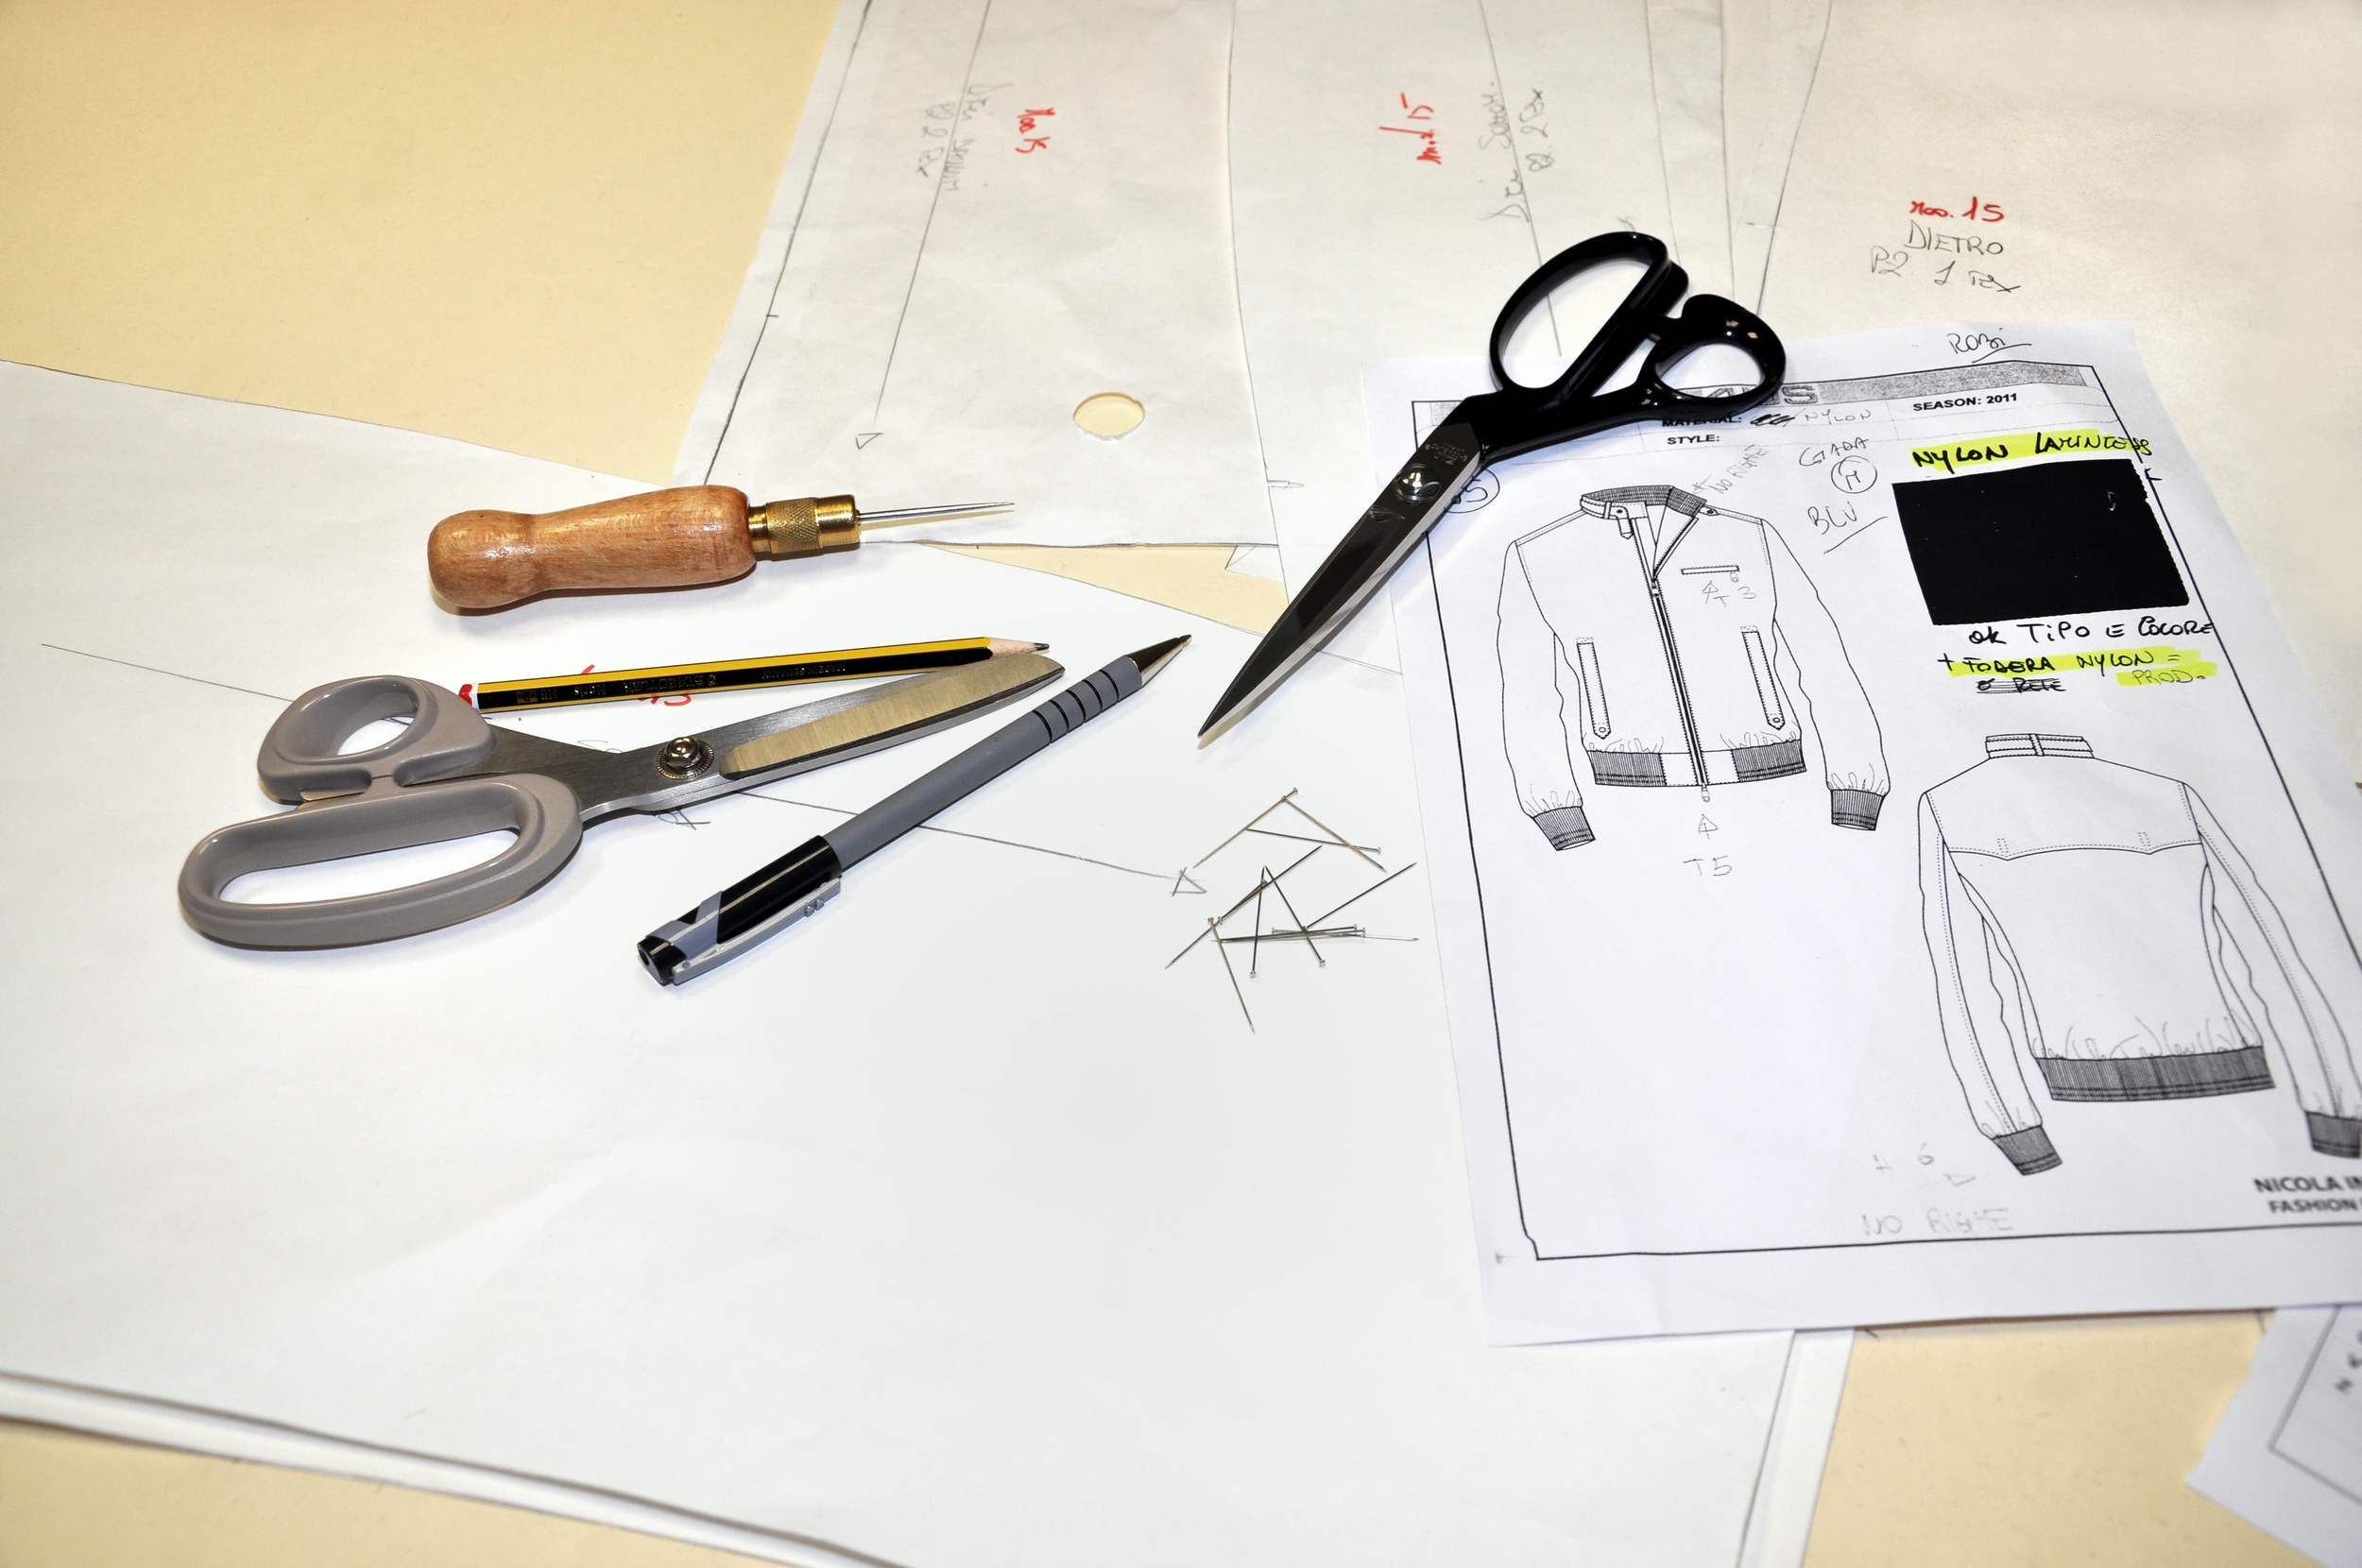 Technical design creates beautiful clothing, but you need to protect your intellectual property.  We offer a safe NDA to protect your interests as a fashion brand.